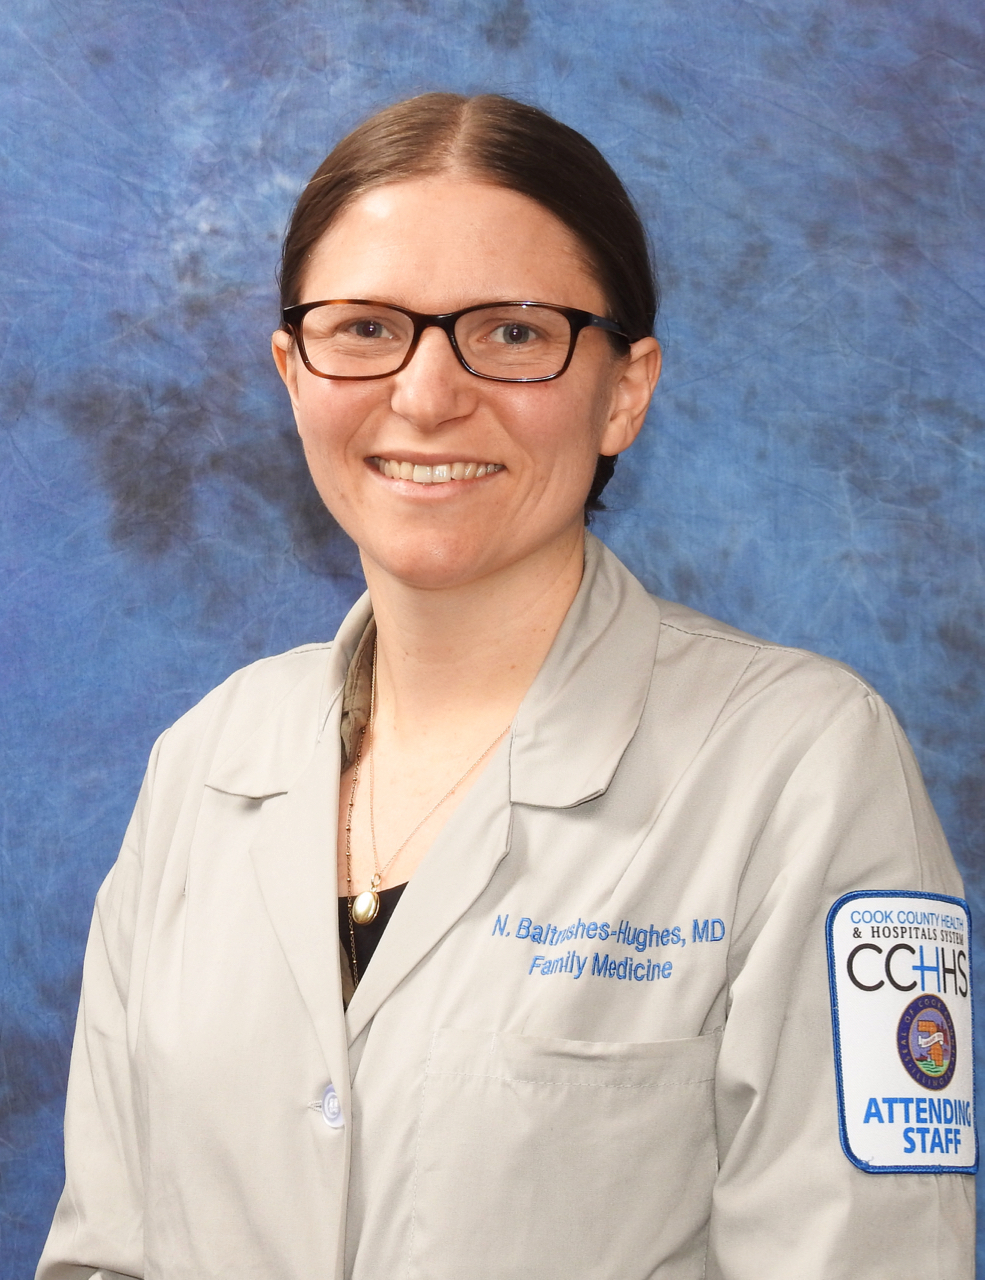 Nicole Baltrushes-Hughes, MD